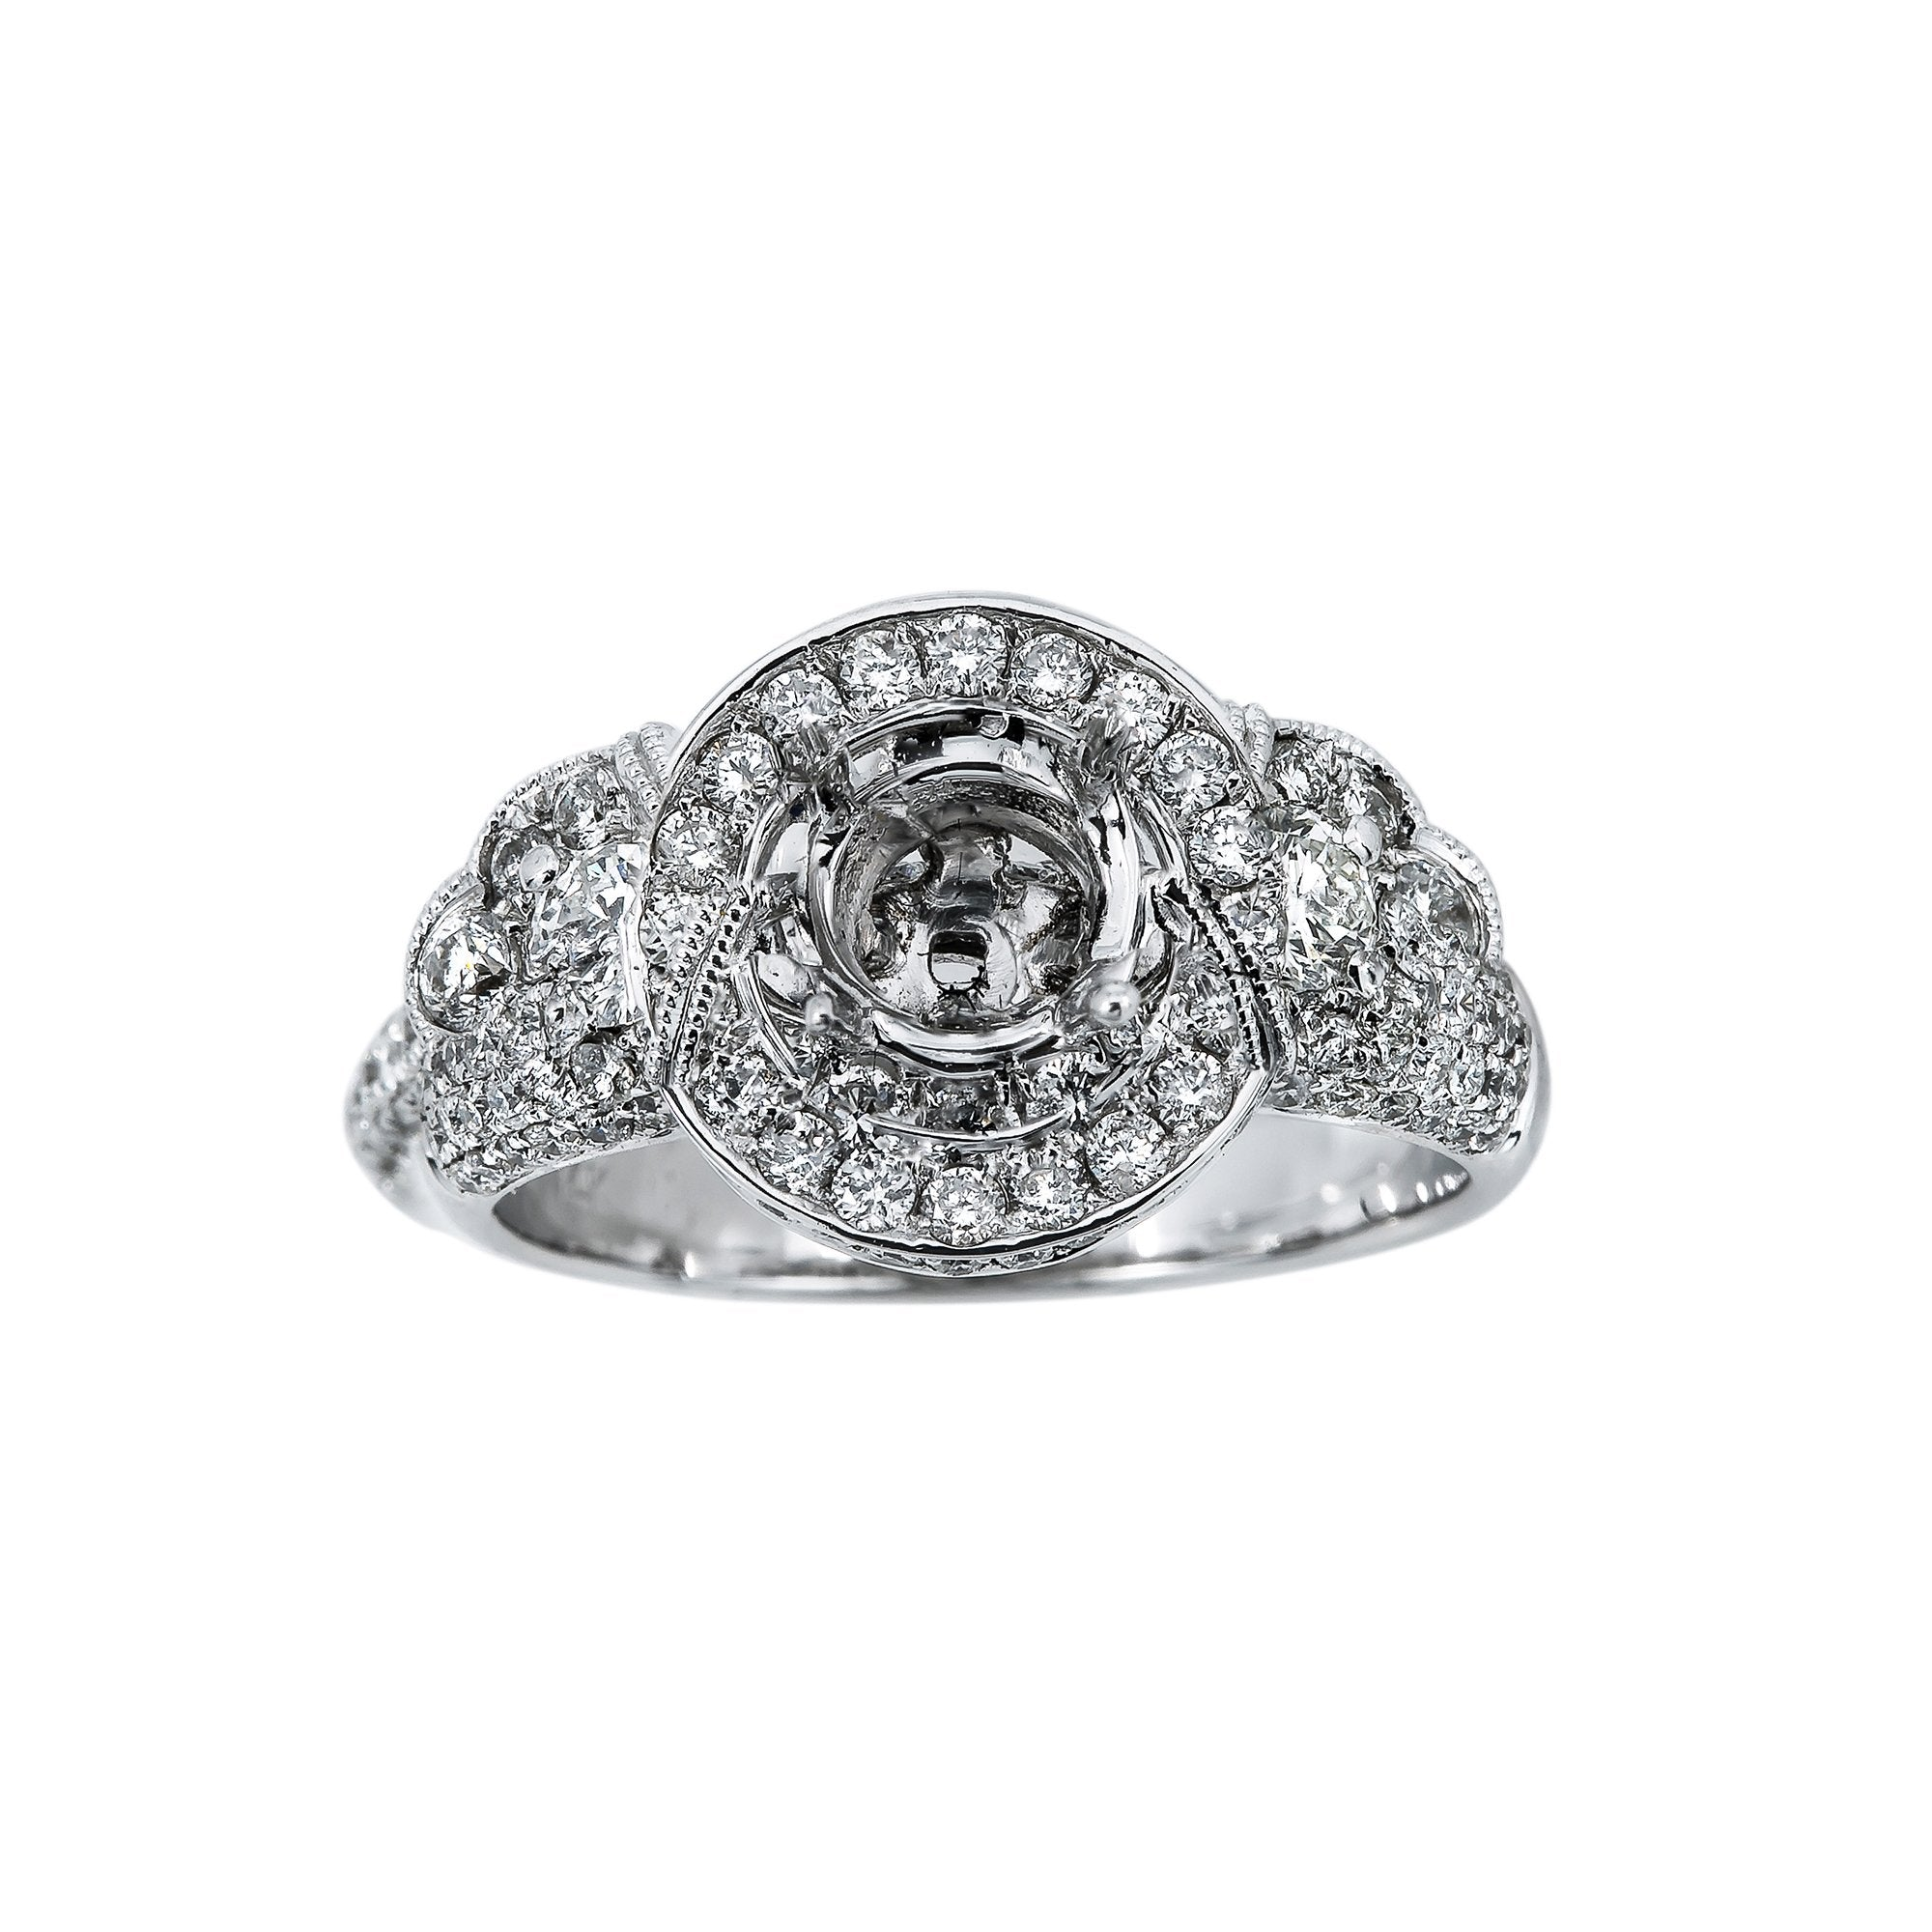 14K White Gold RGR05184 Women's Ring With 1.30 CT Diamonds